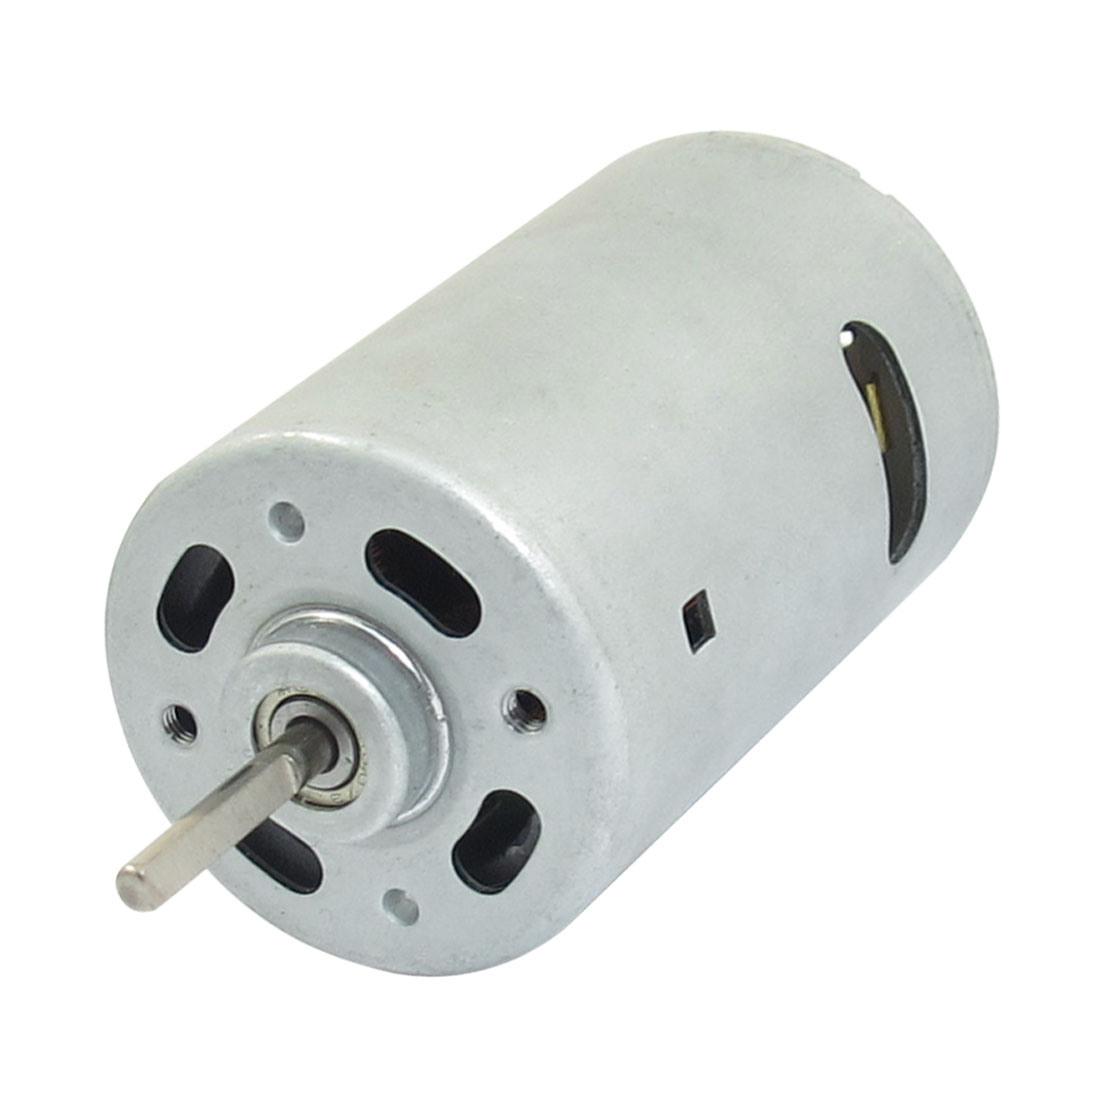 2500RPM DC 12V 100mA 3mm Shaft 2 Terminals Electric Magnetic Motor